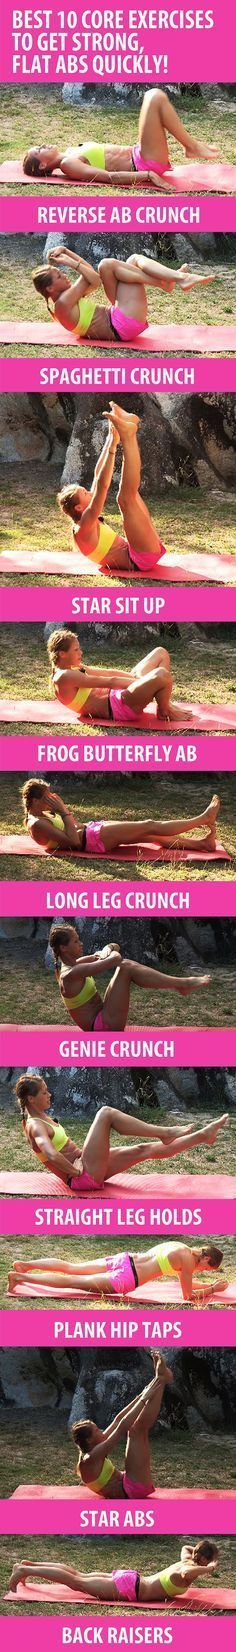 See more here ► https://www.youtube.com/watch?v=t6ic0NKYUMU Tags: fasting to lose belly fat, help losing belly fat, losing belly fat naturally - These 10 core exercises will help you sculpt six-pack abs, build core strength, and get rid of belly fat quickly. Recommended reps: BEGINNERS 8-10, INTERMEDIATE 10-15, ADVANCED 20-30+ #exercise #diet #workout #fitness #health